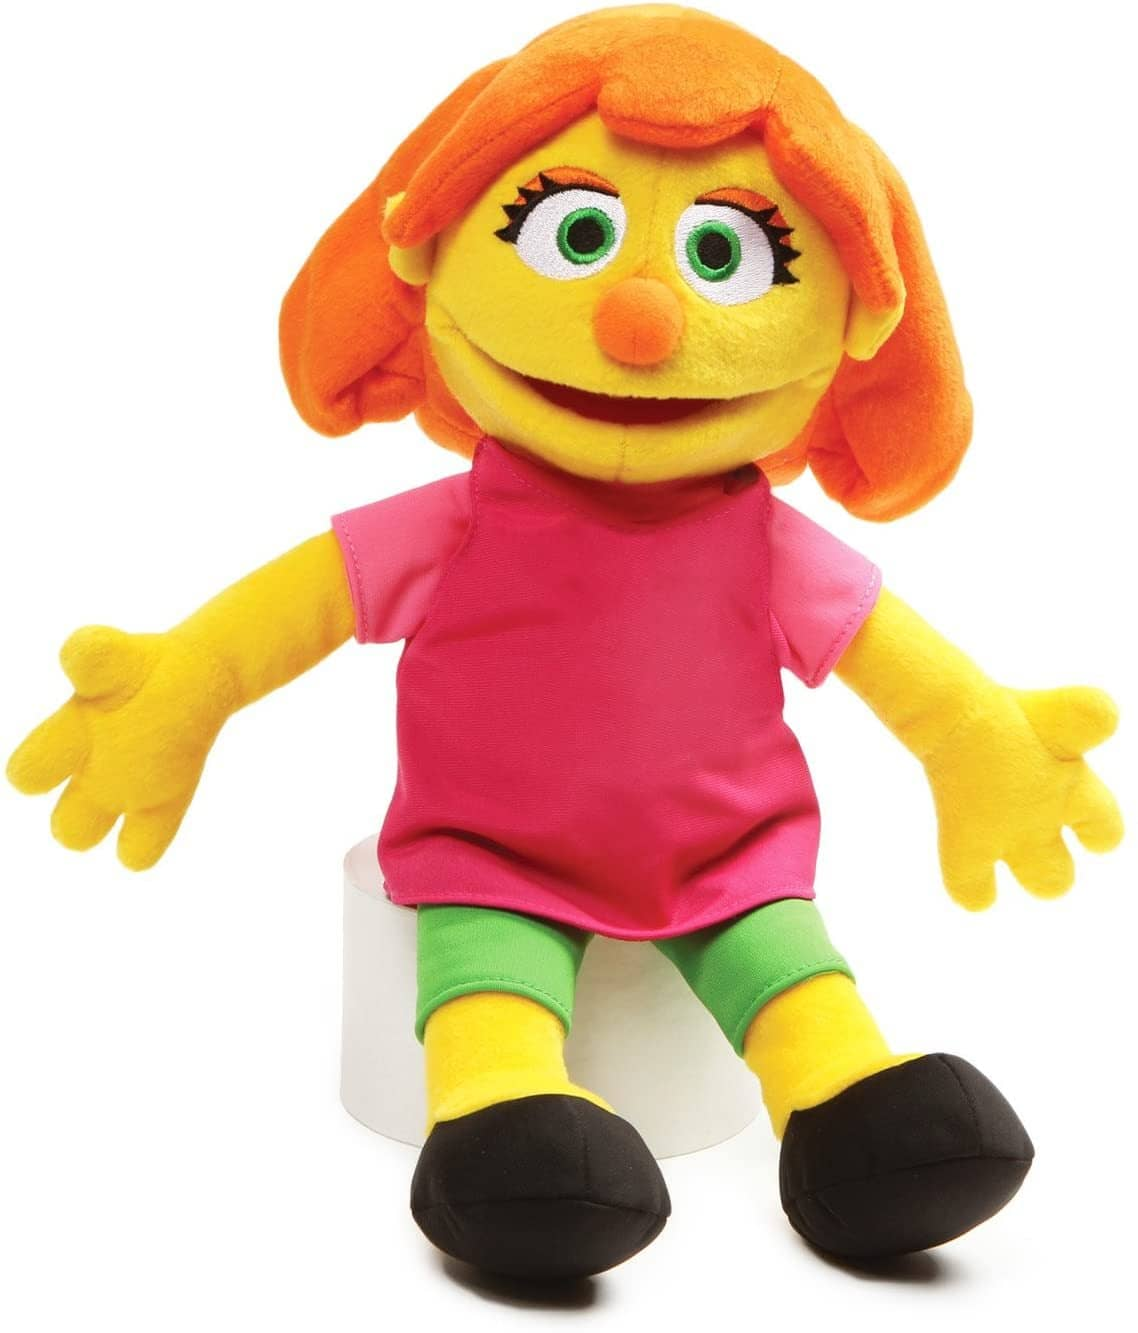 "Gund 4060449 Sesame Street Julia Stuffed Plush, 14""-Kidding Around NYC"